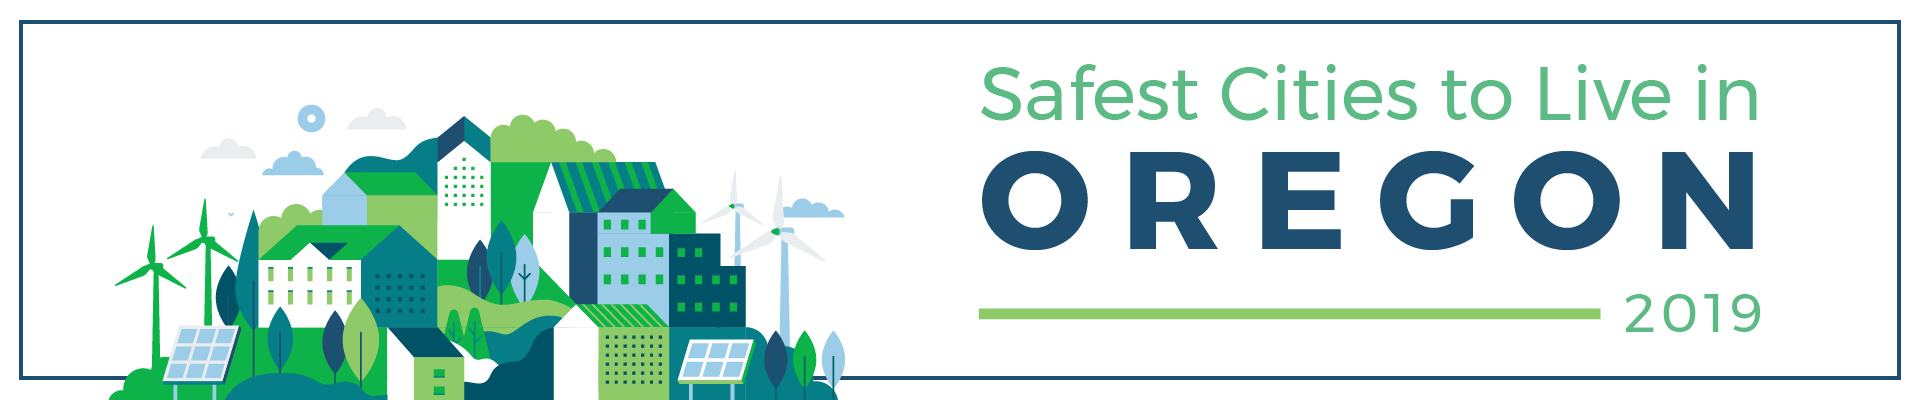 header - safest_cities_oregon_2019